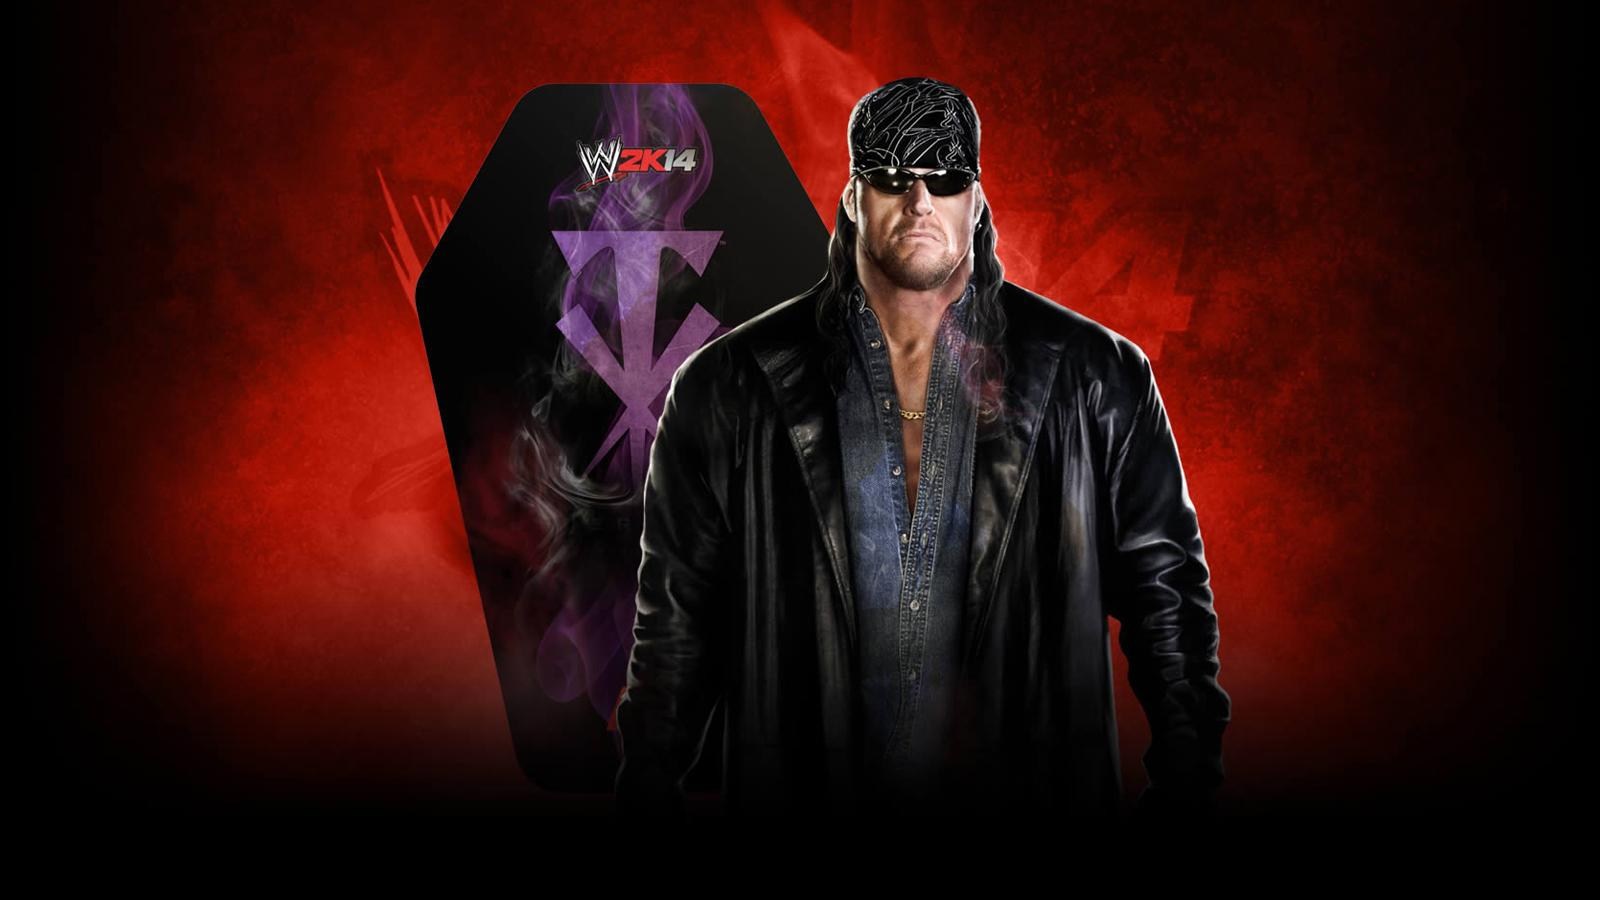 wallpapers - wwe 2k14 images